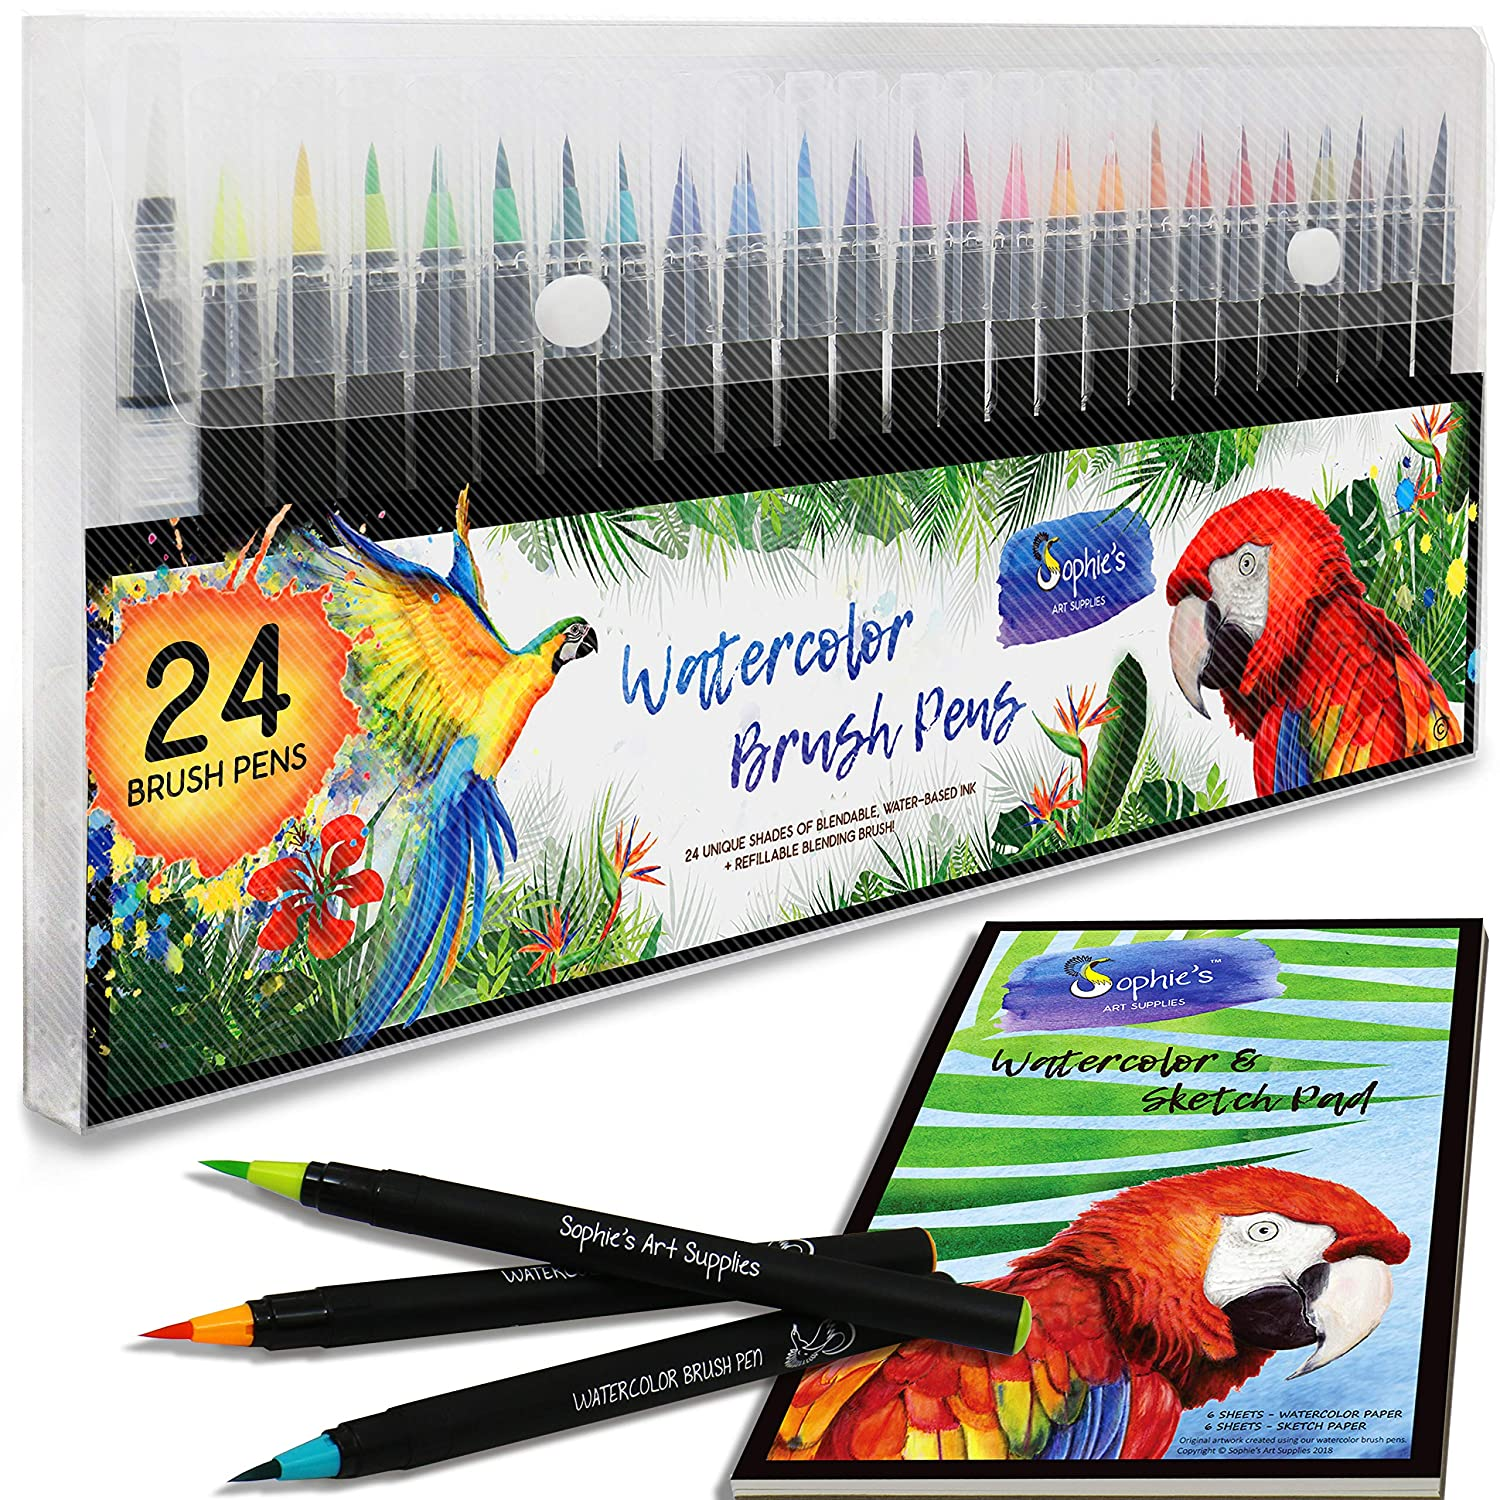 Premium Watercolor Real Brush Pens by Sophie's Art Supplies [48 Pack]. Vibrant Water Soluble Ink. Flexible Brush Tips for Watercolor Effects, Coloring and Calligraphy. Free Blending Brush + Pad! Sophie' s Art Supplies